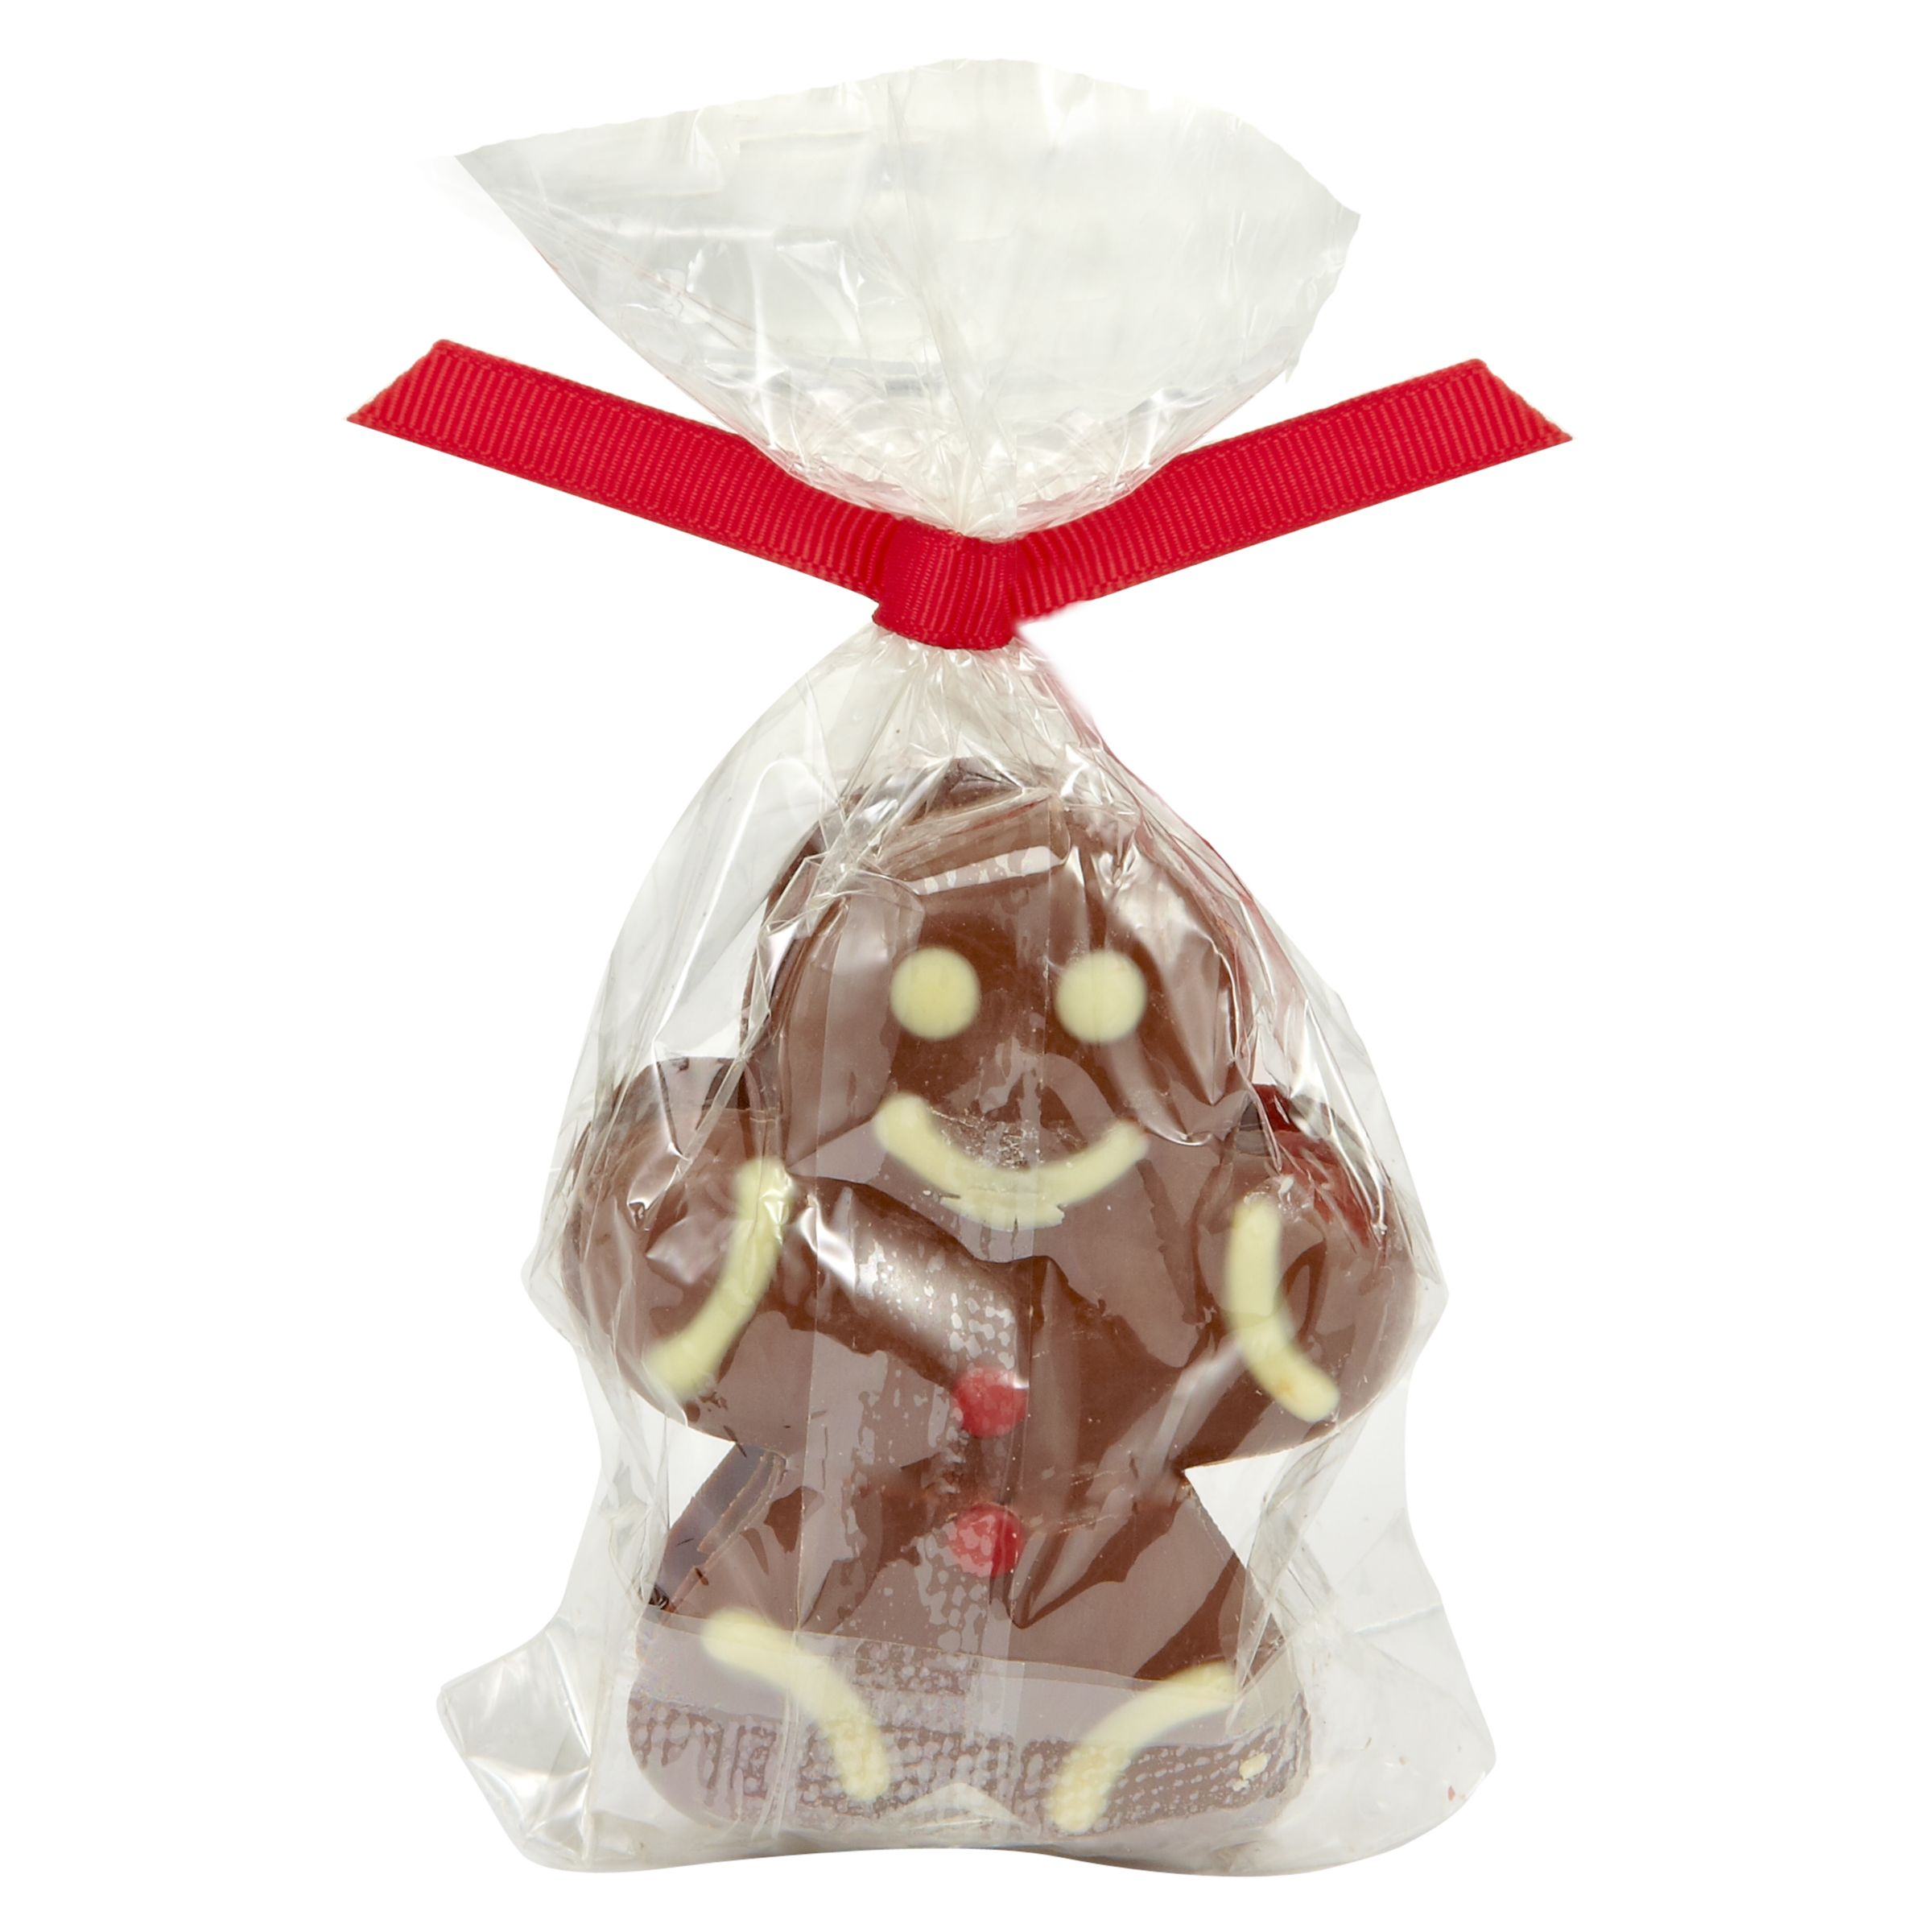 Buy Cheap Gingerbread Men Compare Products Prices For